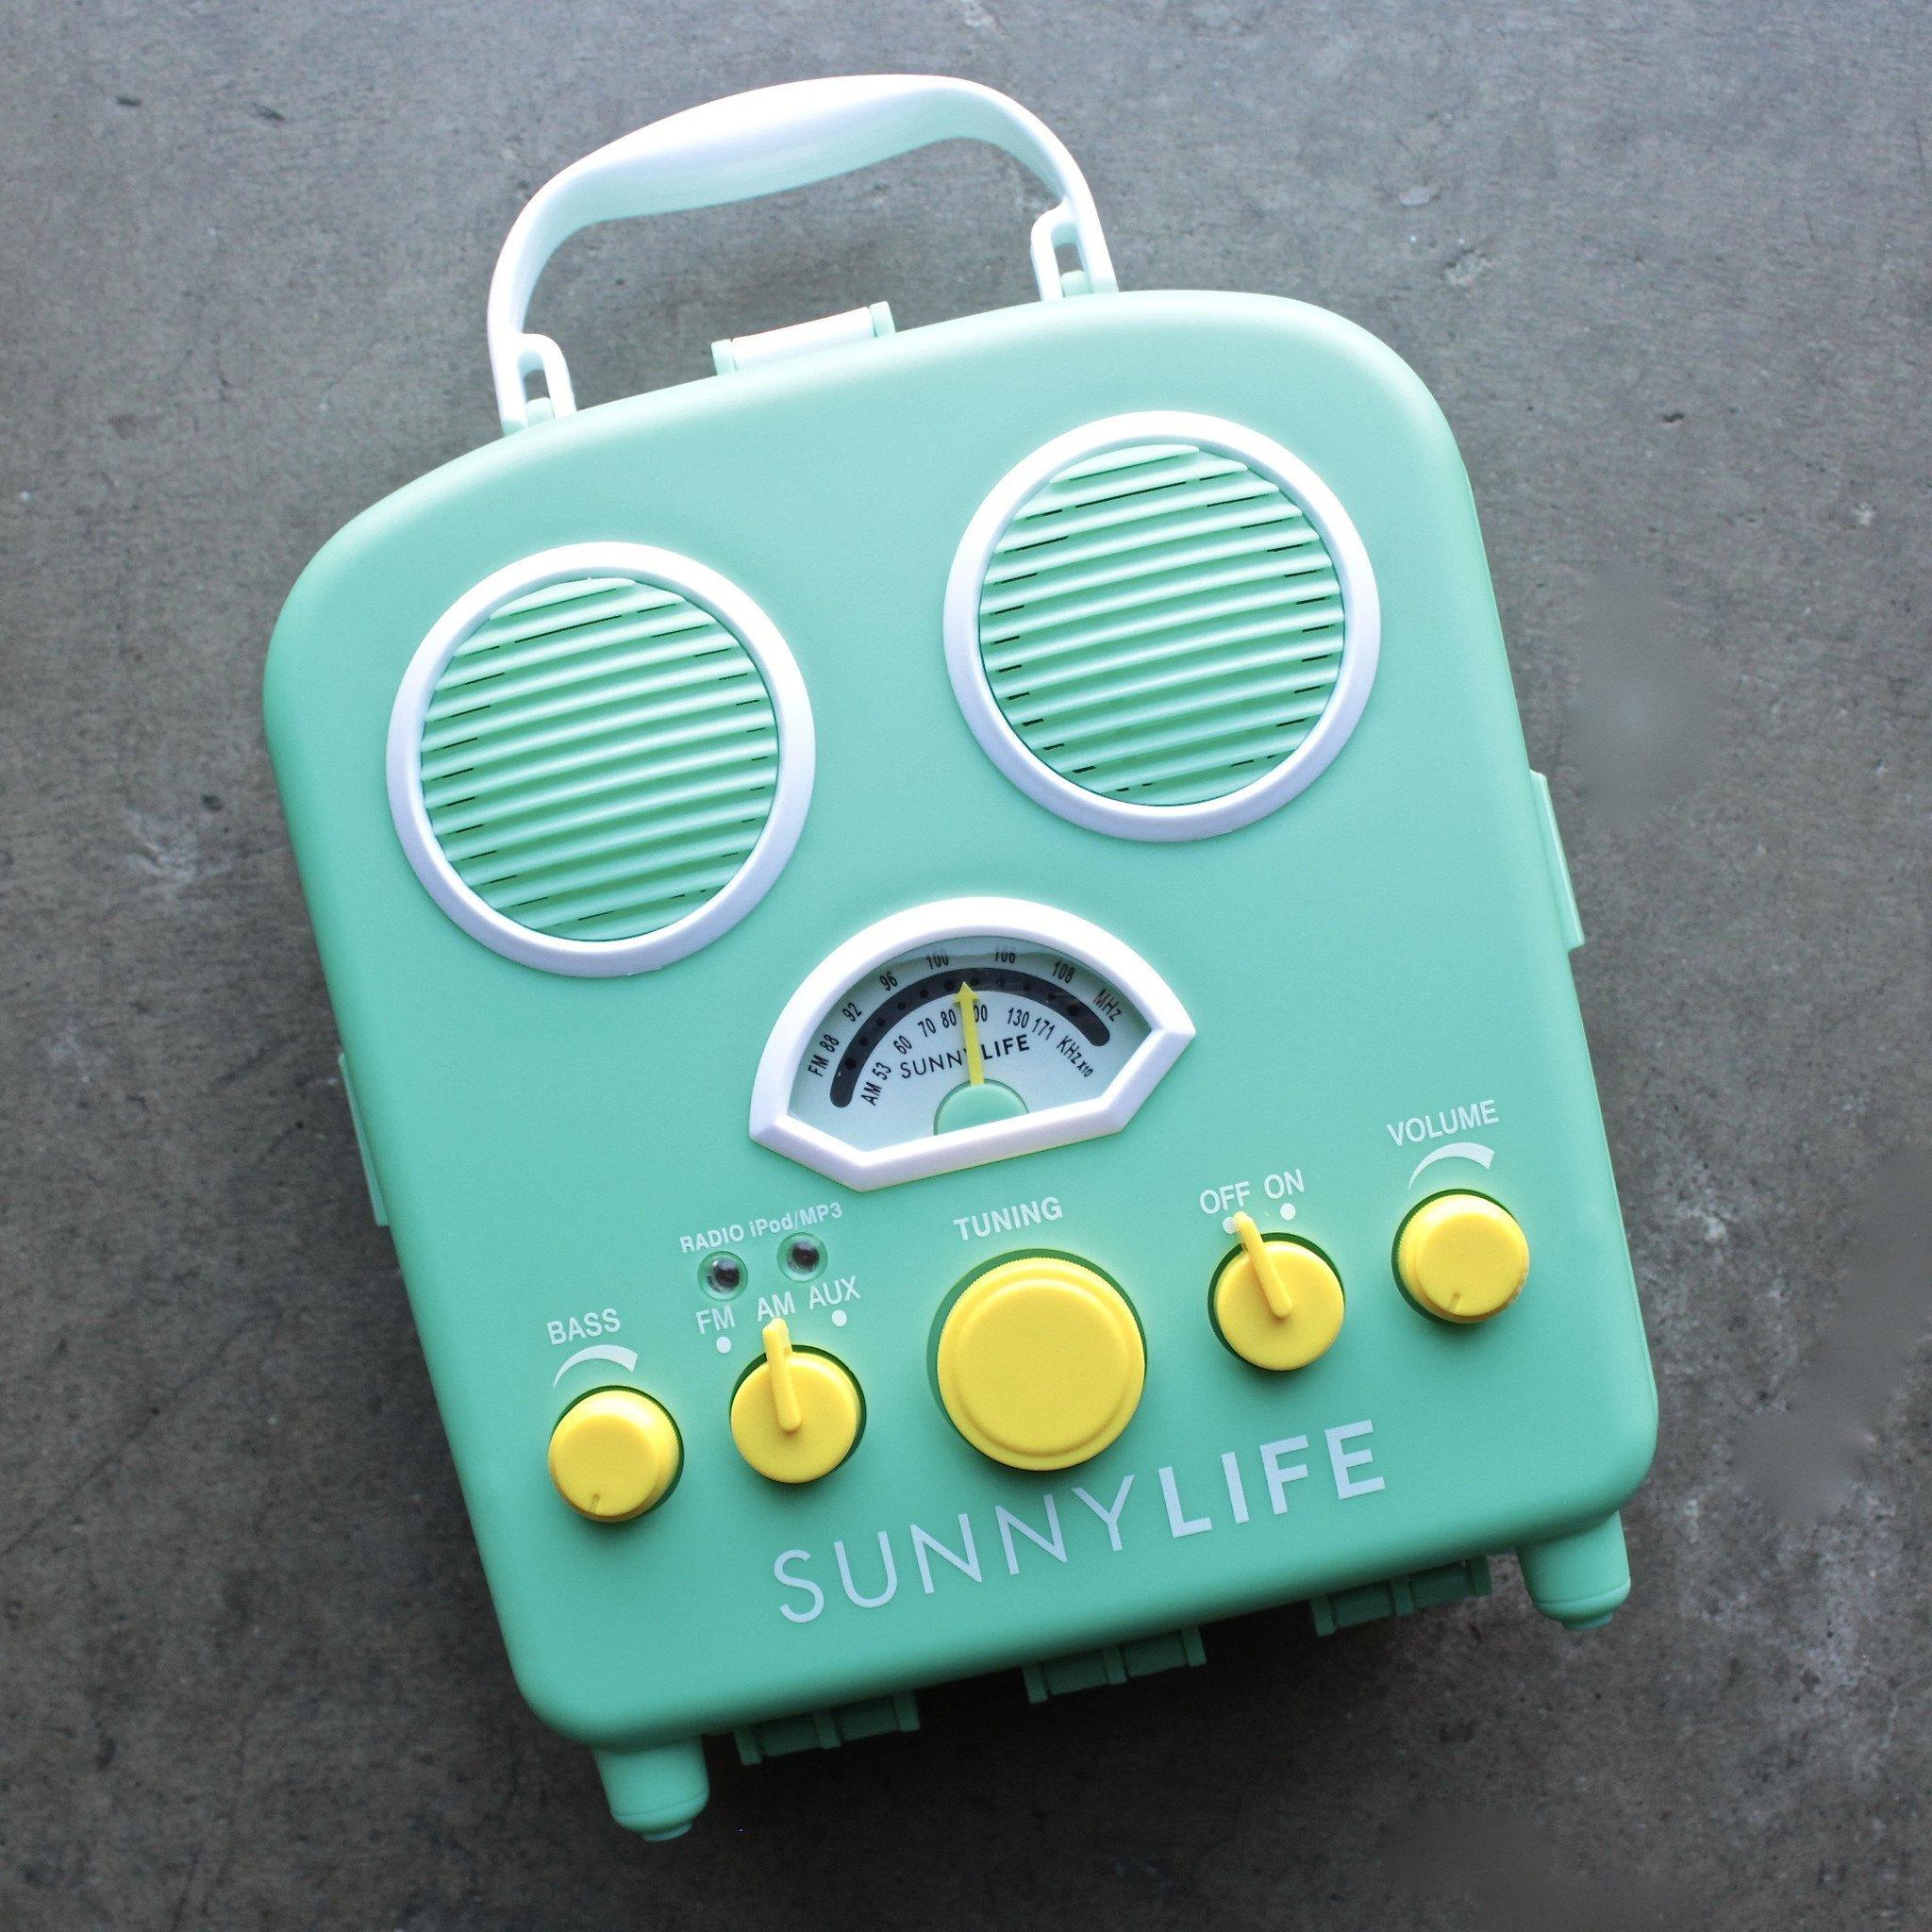 Image of sunnylife - beach sounds portable water resistant speaker & radio in green